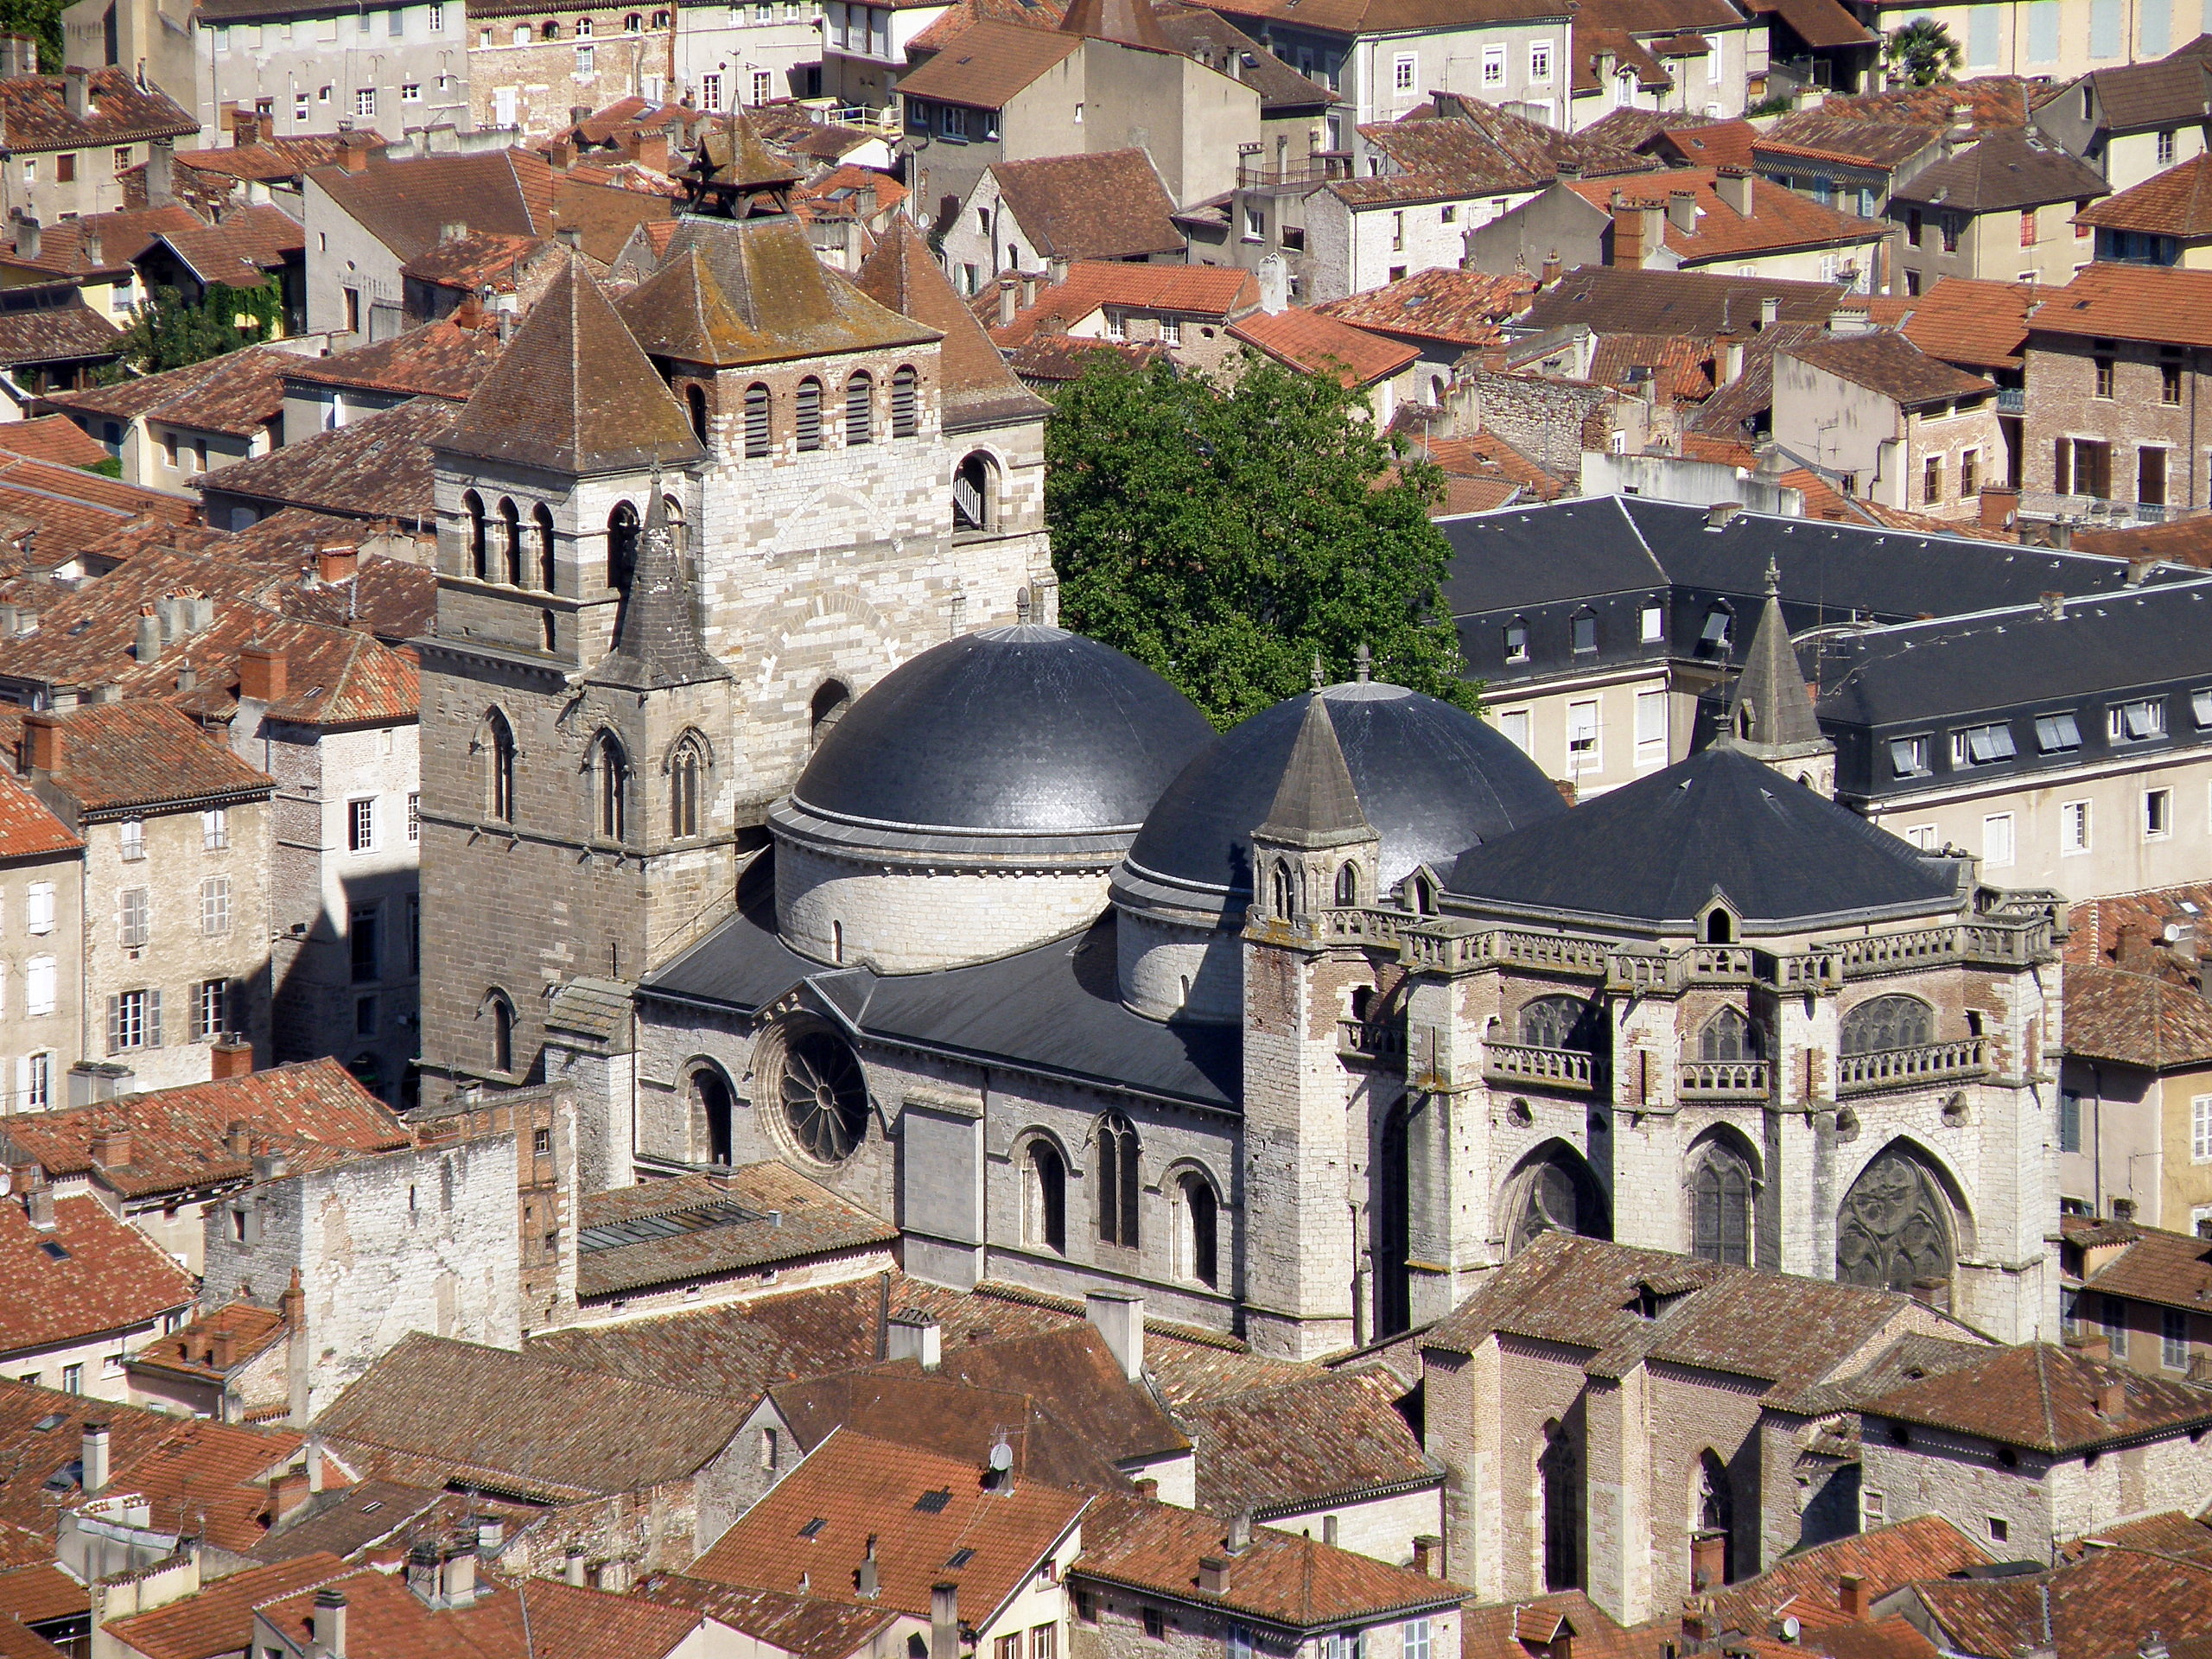 Cath drale saint tienne de cahors wikiwand - Cathedrale saint etienne de cahors ...